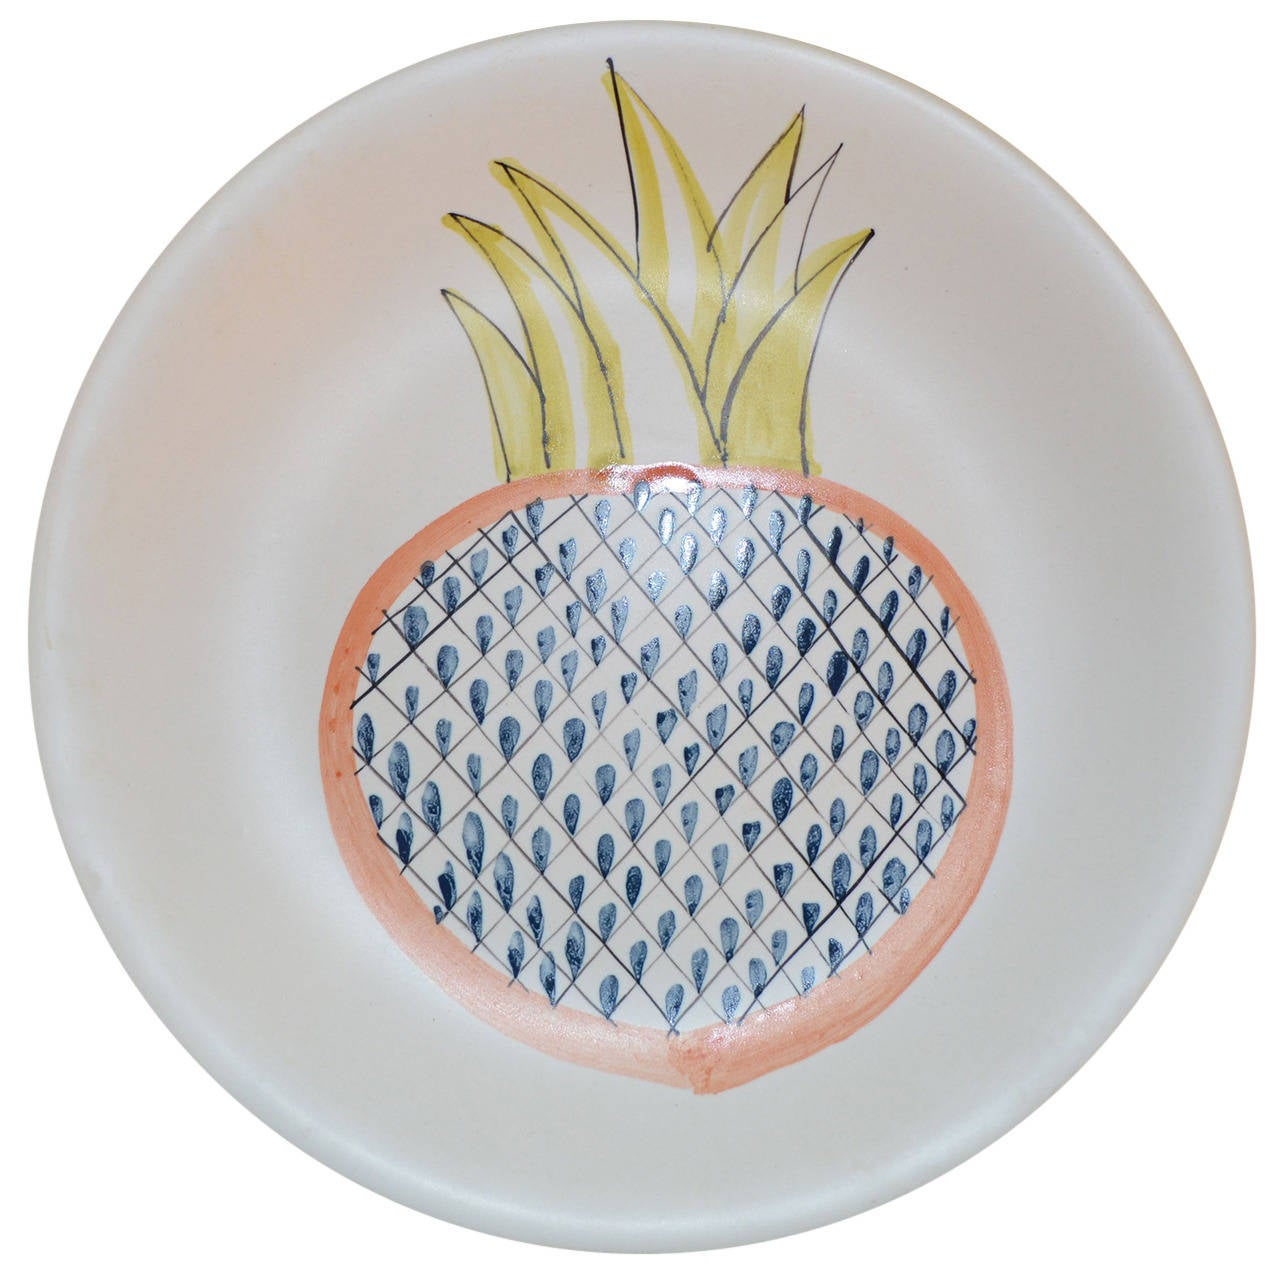 Decorative Ceramic Plate By Roger Capron At 1stdibs. Grand Dining Room. Safari Wall Decor. Dining Room Tables Furniture. Interior Design Ideas Living Room. Dining Room Ceiling Fan. Mens Bedroom Decor. Marrakech Decor. Living Room Glass Table